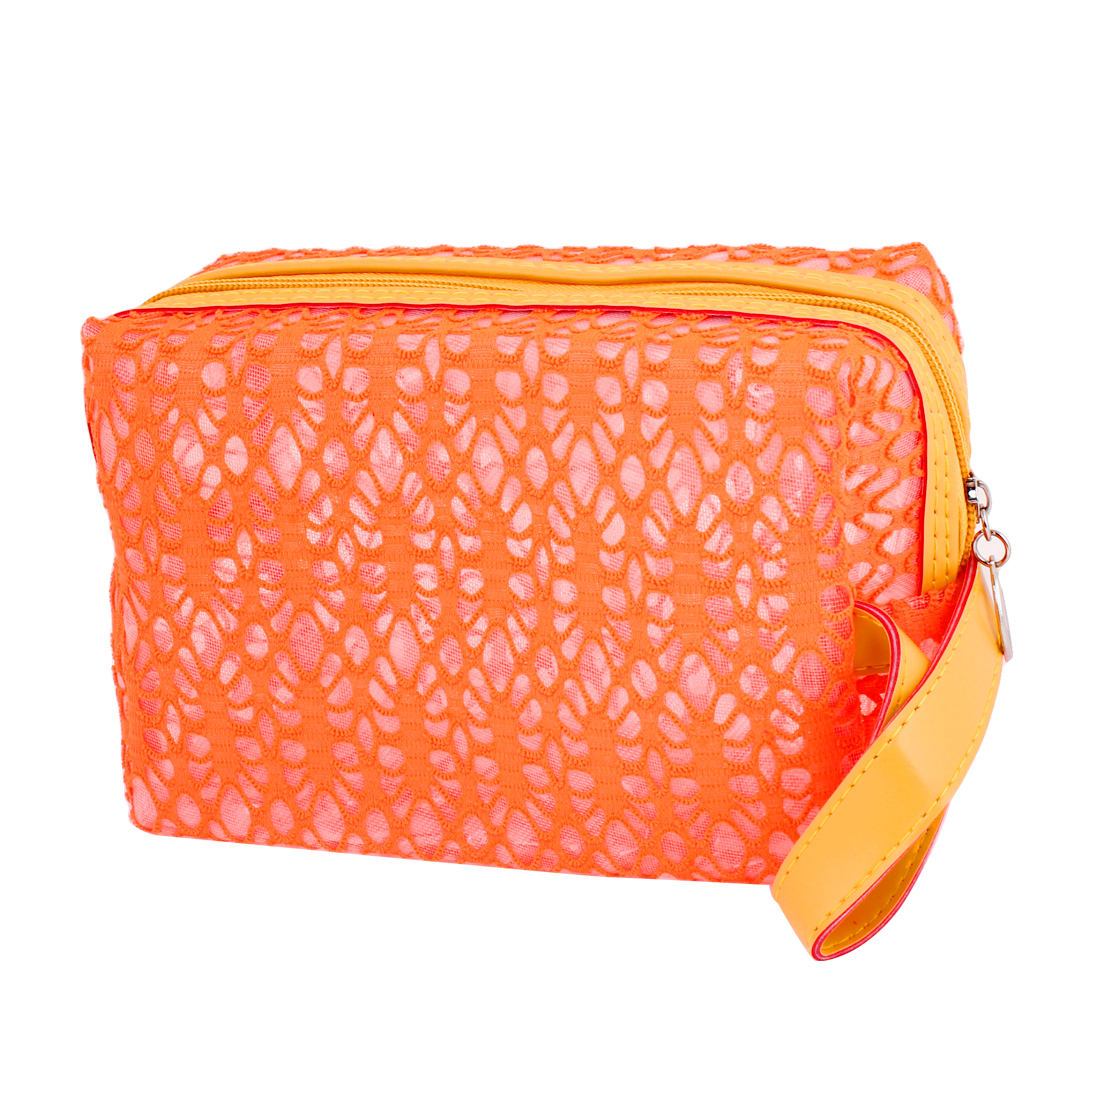 Zipper Closure Clear Soft Plastic Lining Makeup Bag Holder Orange Red for Lady